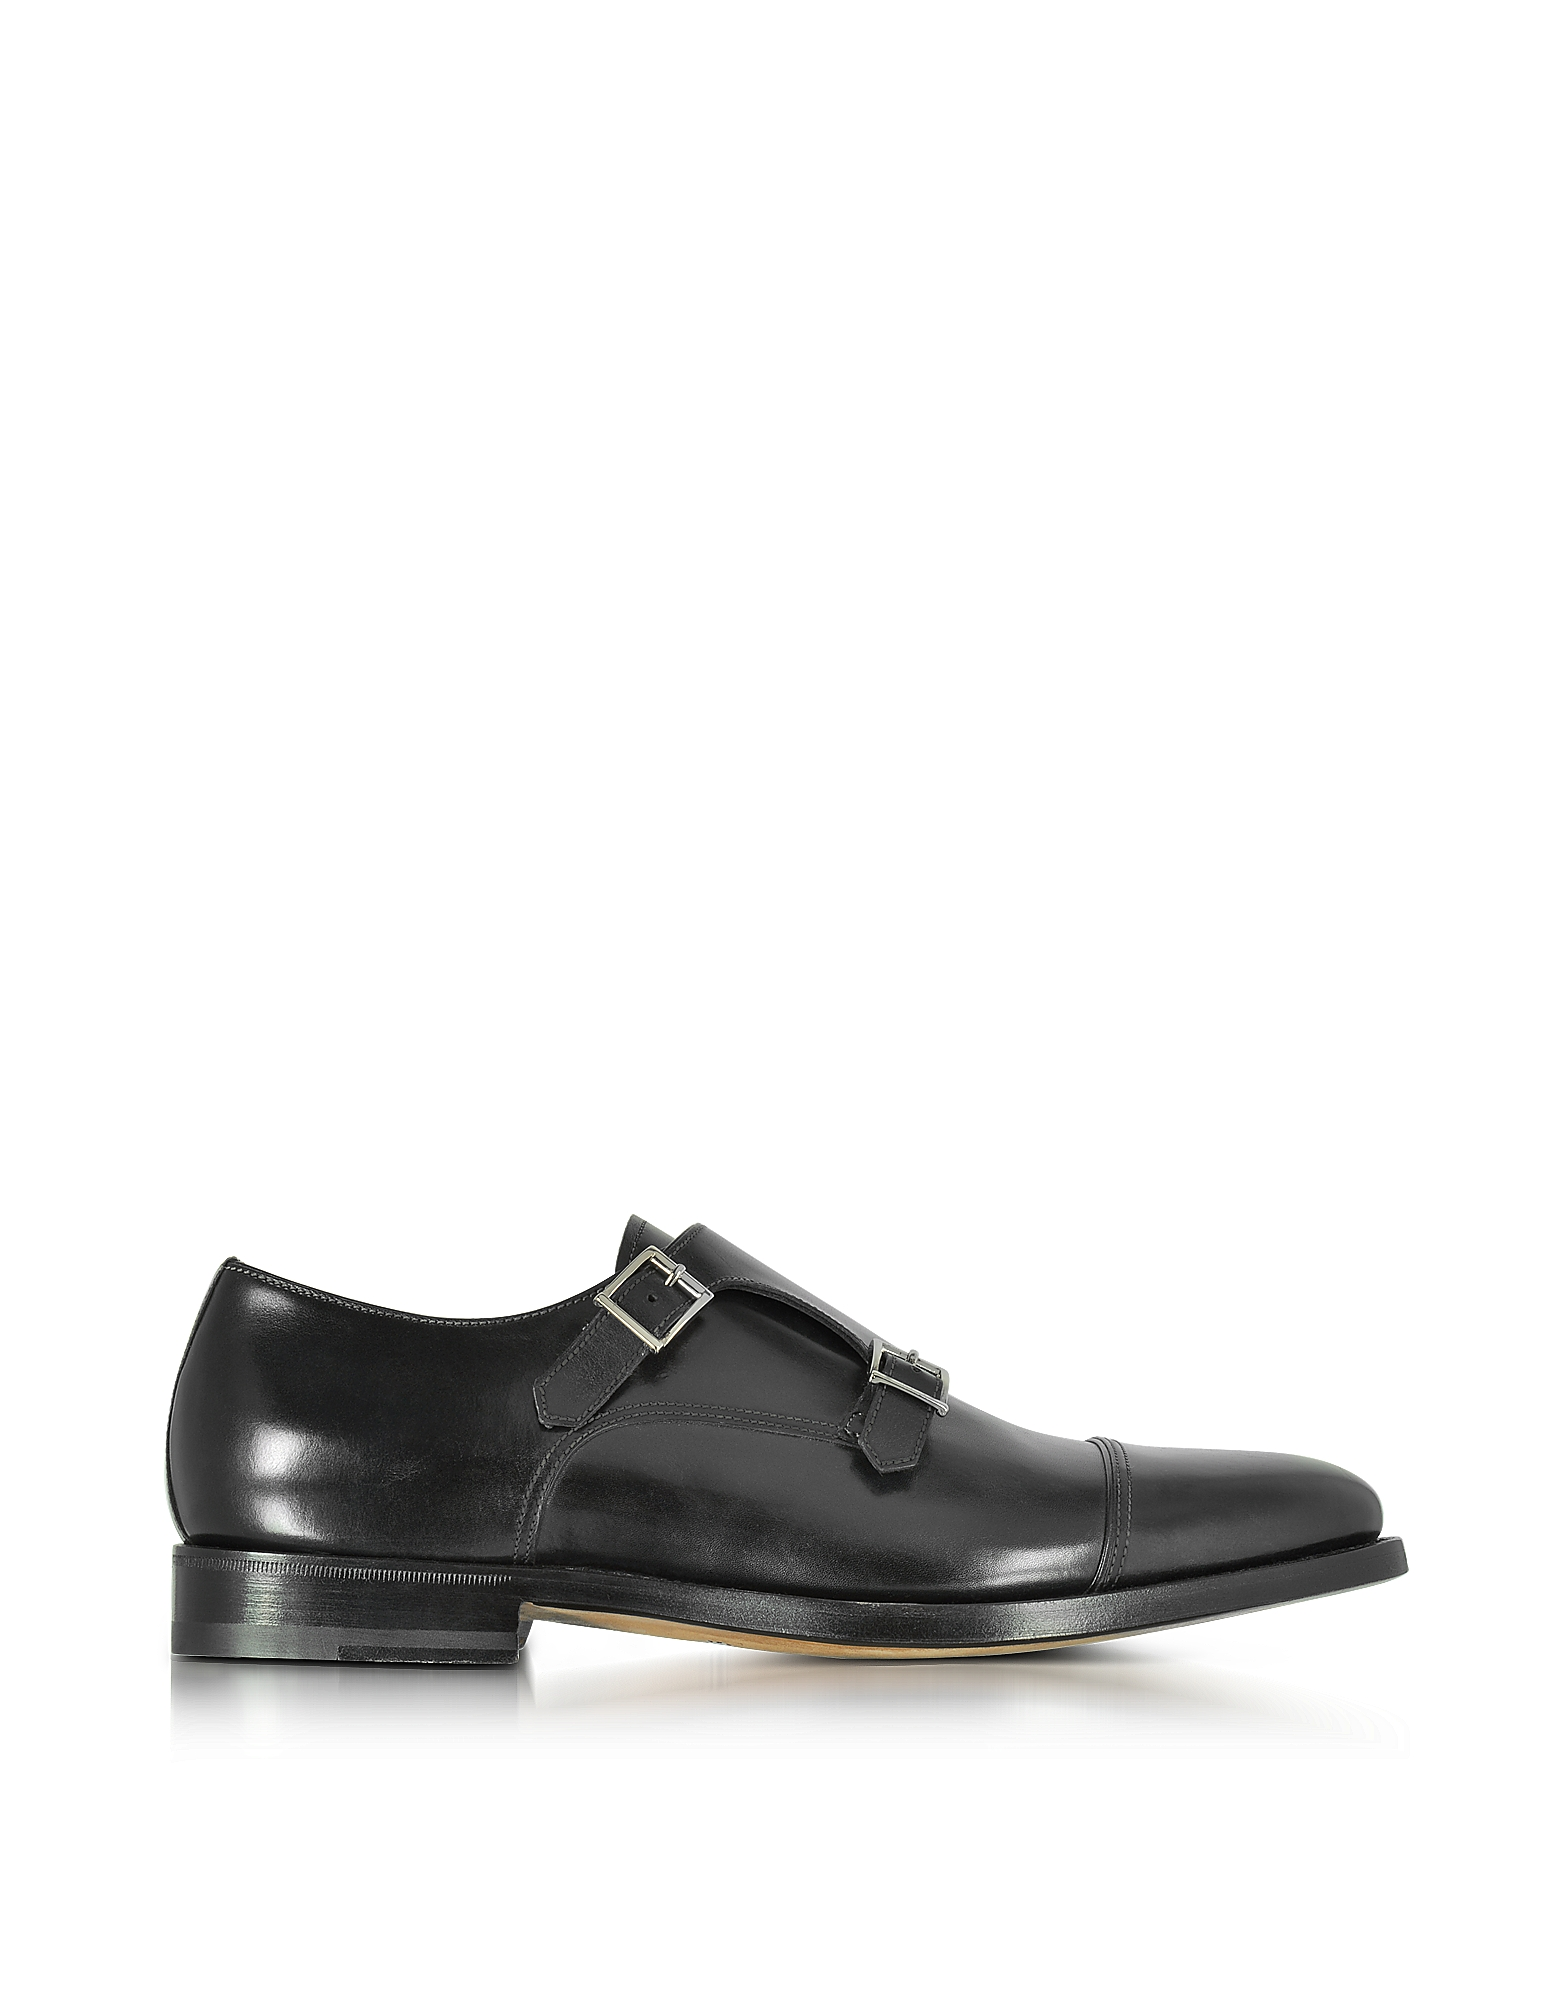 Santoni Shoes, Wilson Black Leather Monk Strap Shoes